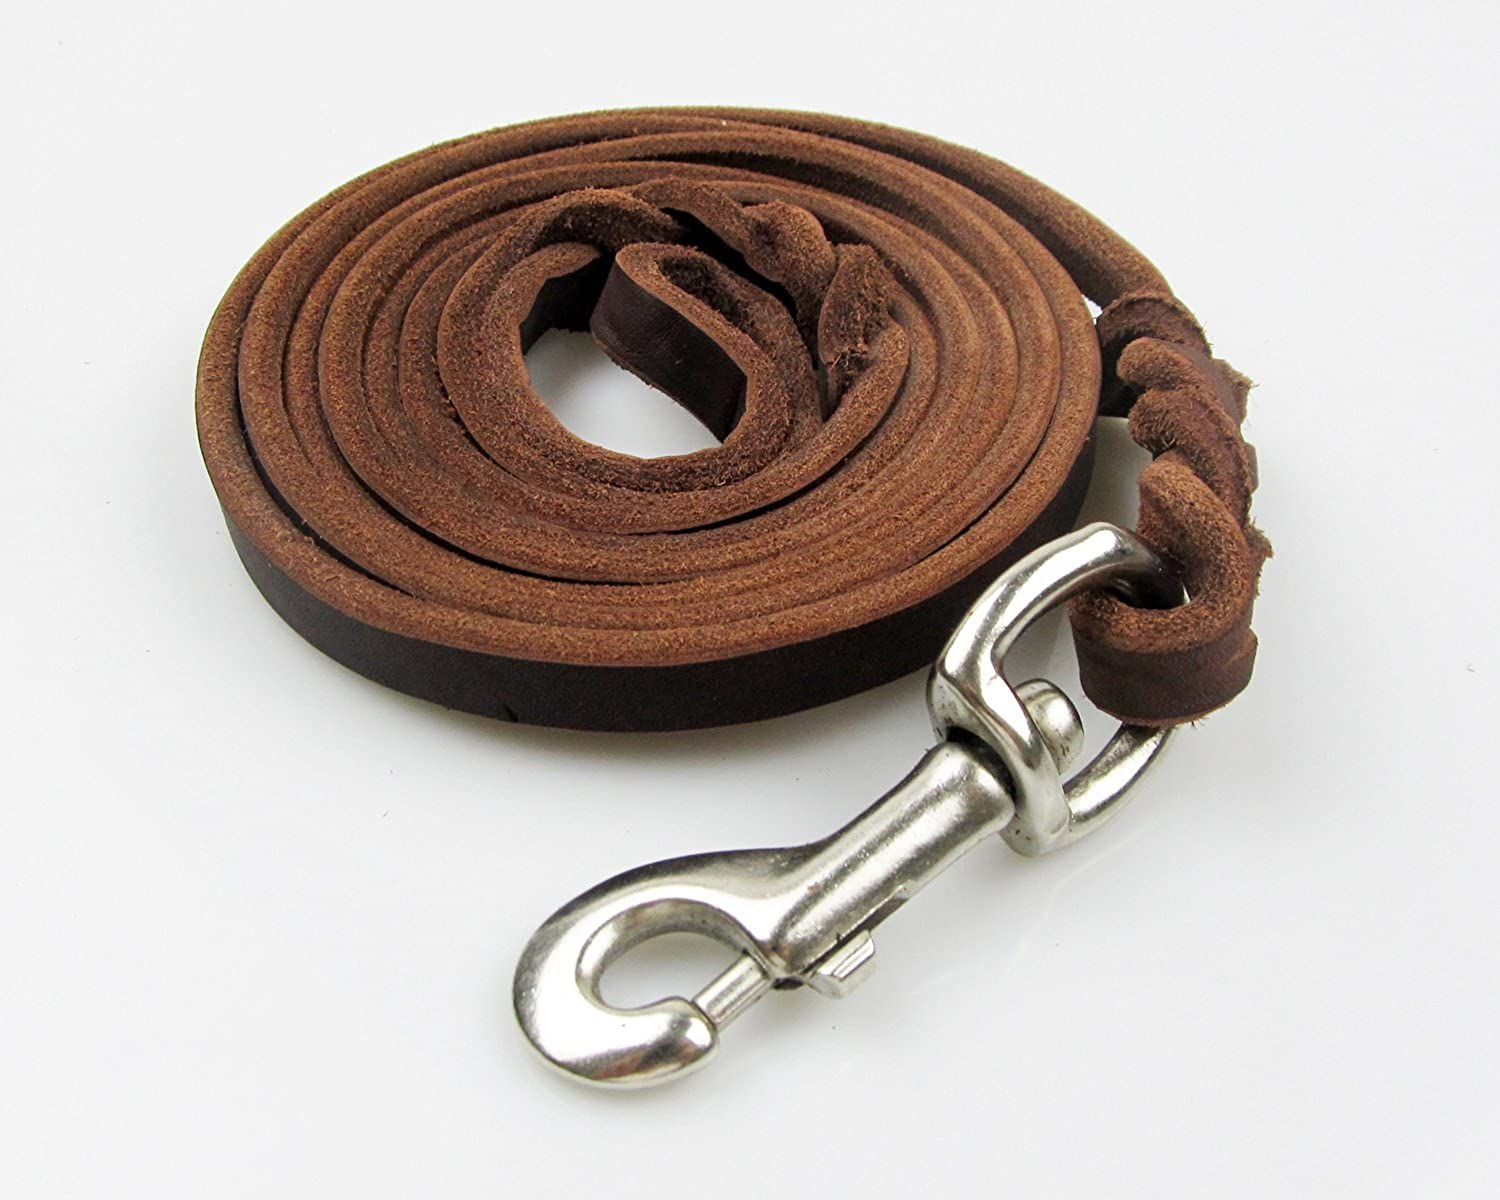 Rantow Durable Genuine Brown Leather Leash with Classic Braid Handle and Metal Clasp for Large Dogs Medium Dogs, 260 cm x 1.2 cm, Collar & Harness Available Separatey (Iron)